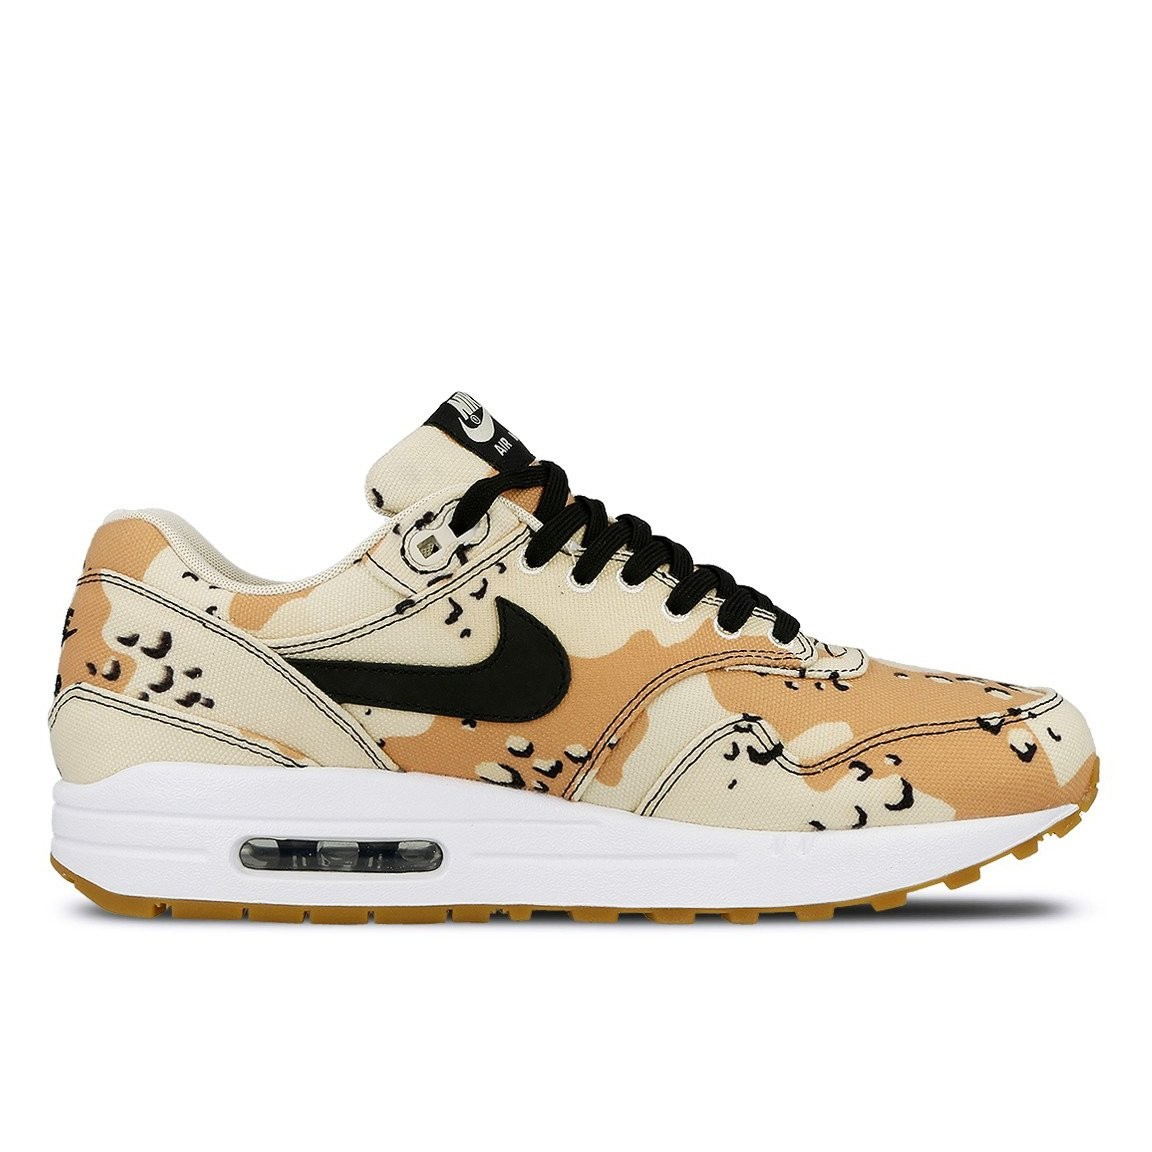 875844-204 Nike Air Max 1 Premium Scarpe - Beach/Nere-Praline-Light Cream